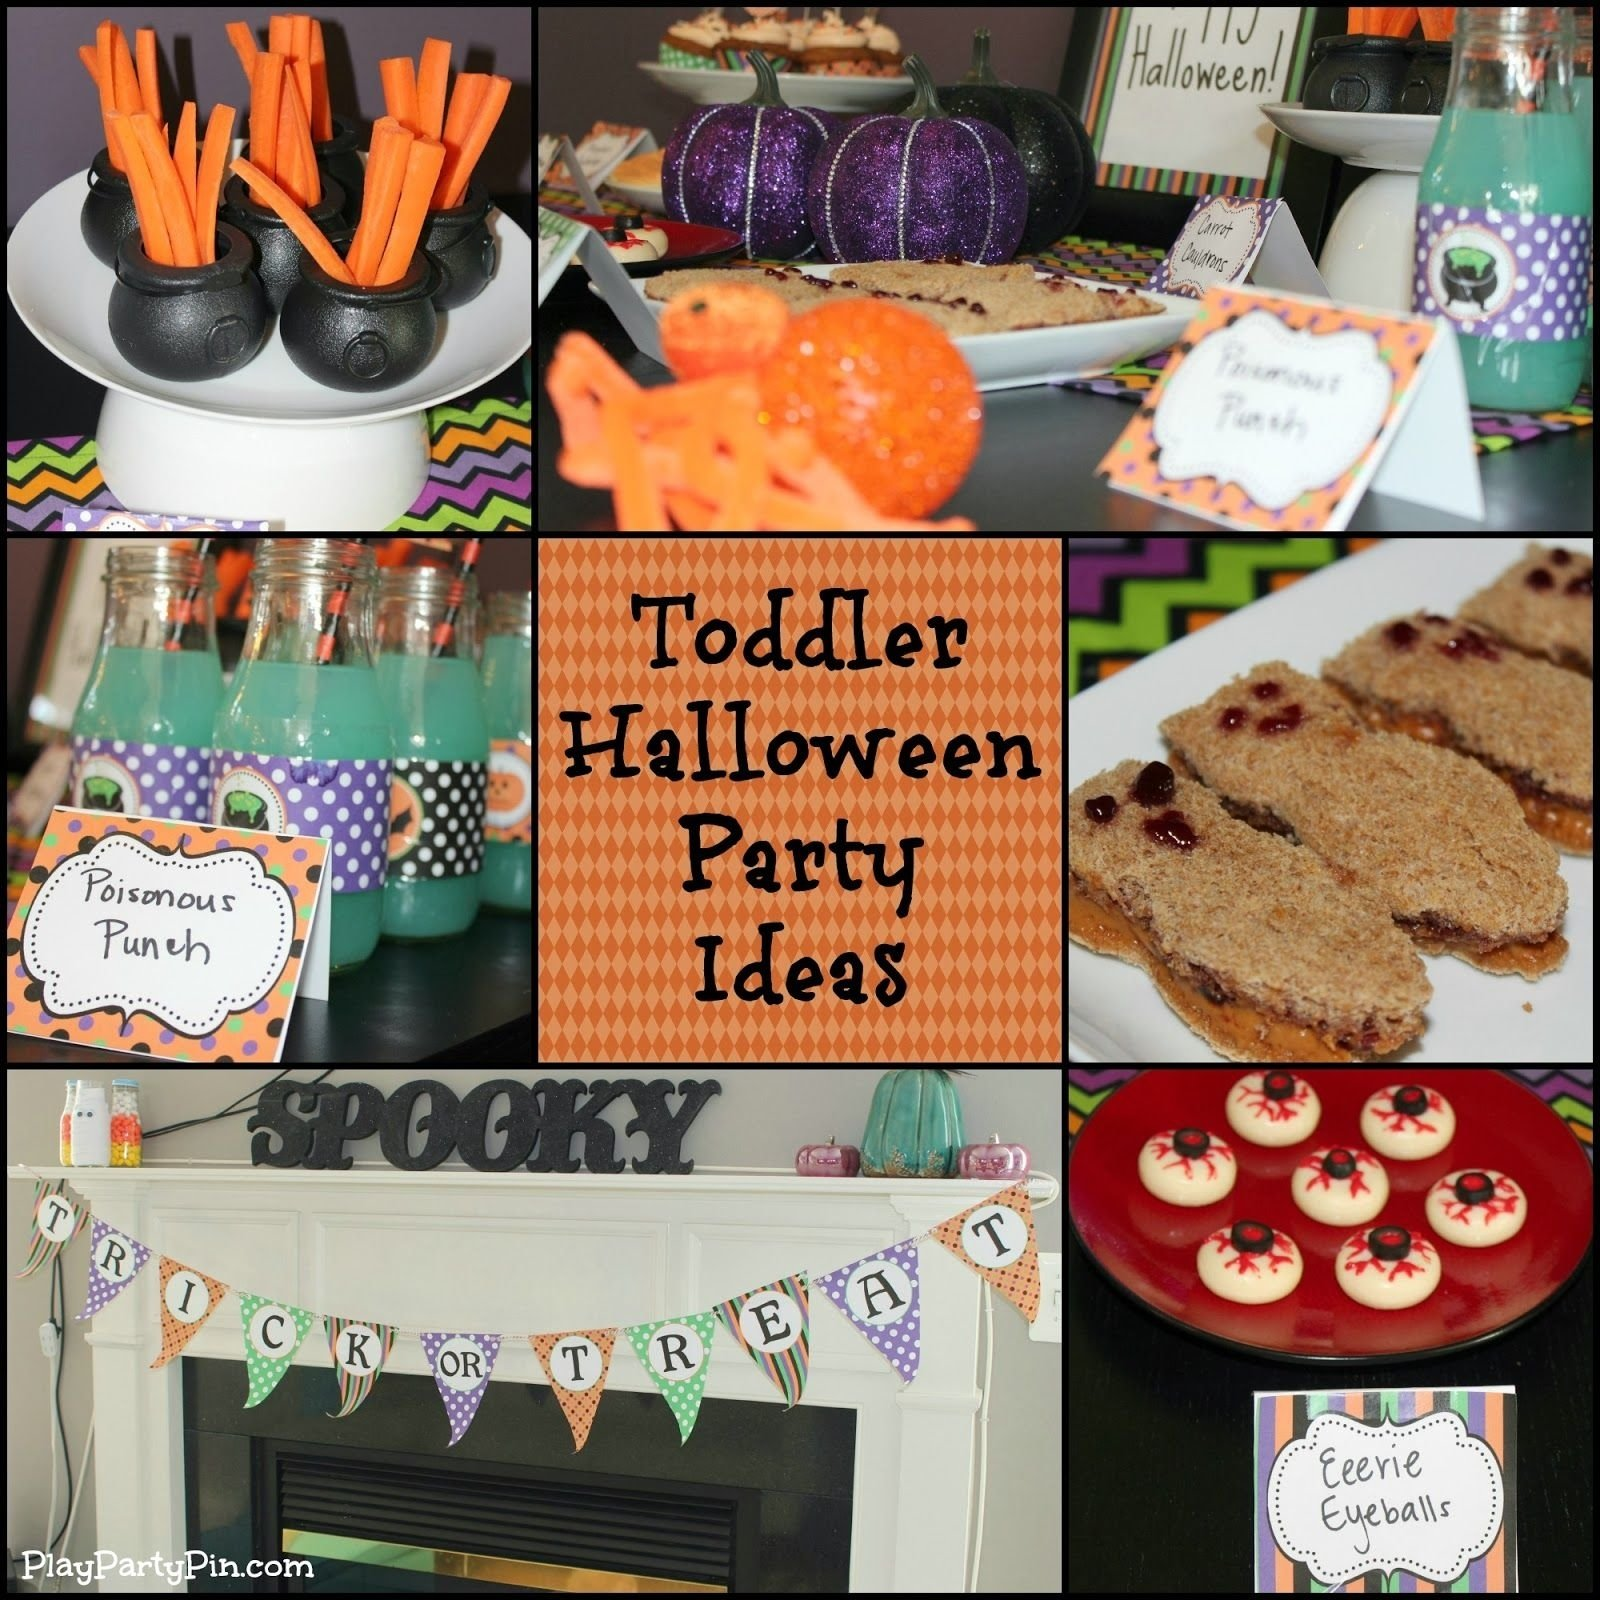 10 Gorgeous Halloween Party Ideas For Toddlers toddler halloween party ideasplaypartypin toddler 2020